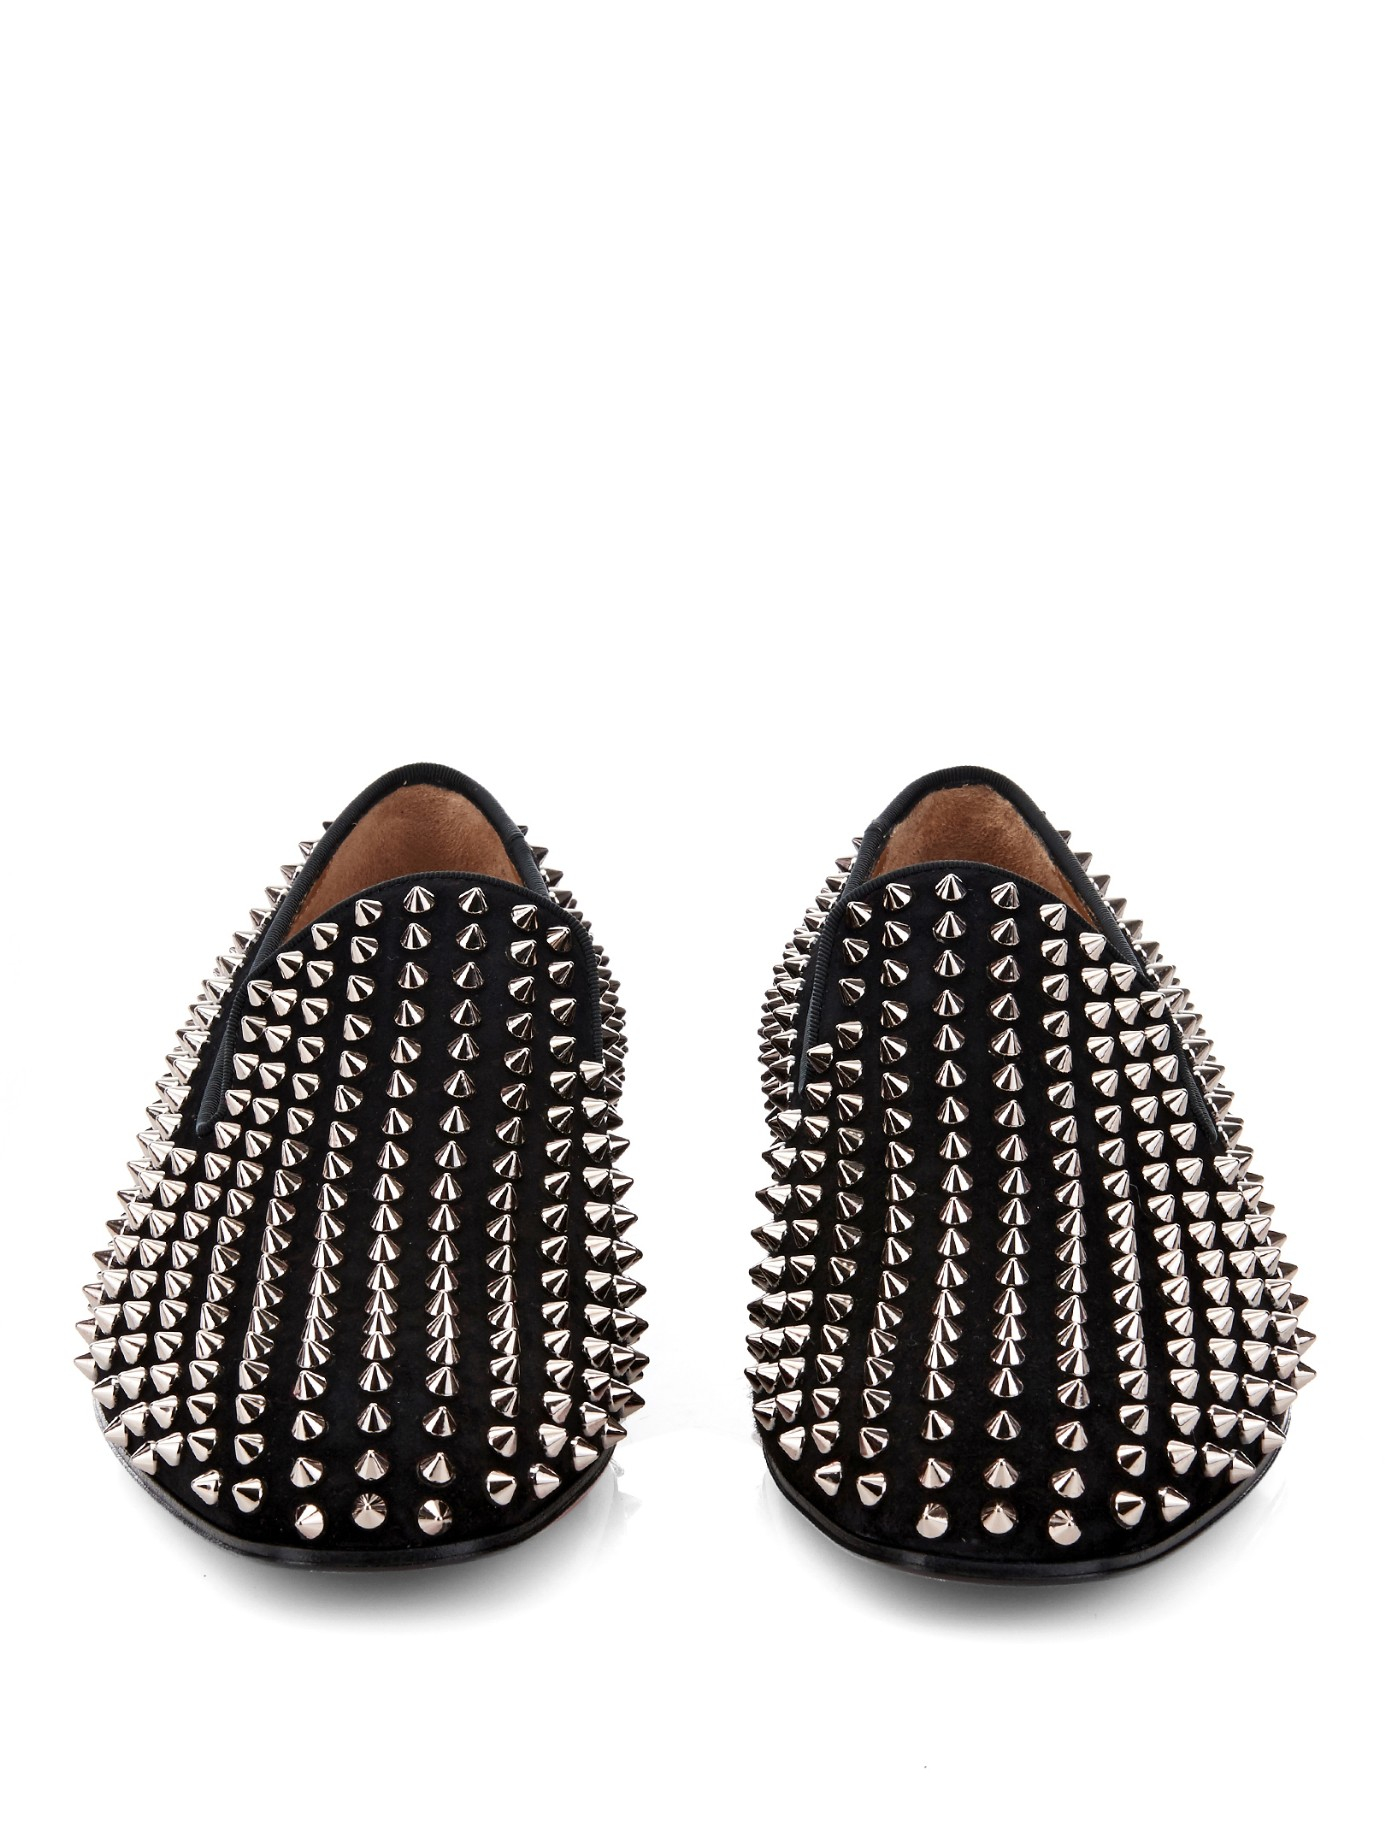 c02c8eefb731 Lyst - Christian Louboutin Dandelion Studded Suede Loafers in Black ...